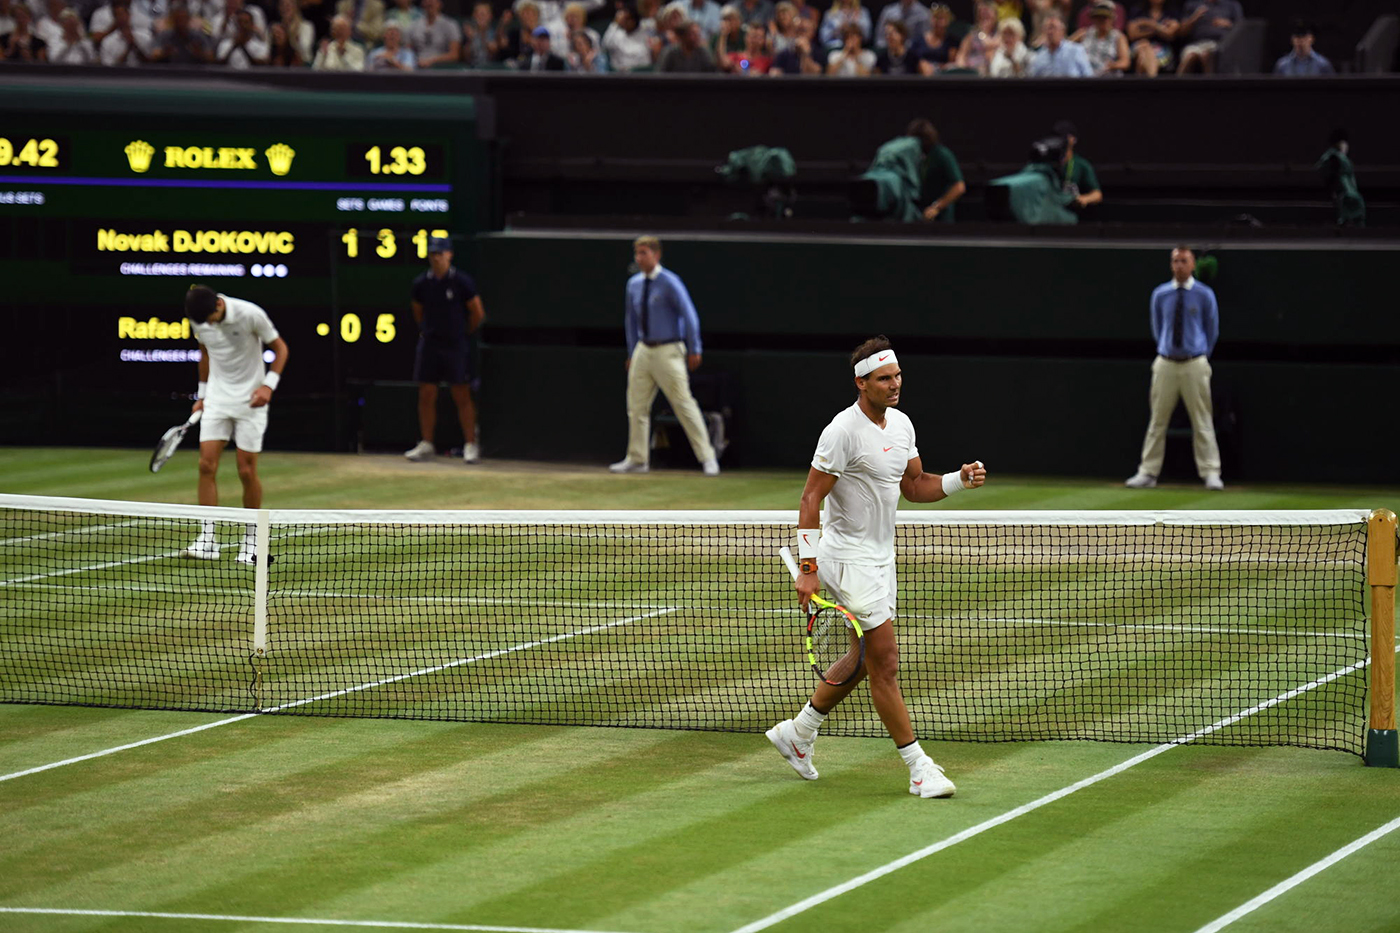 Novak Djokovic SRB v Rafael Nadal ESP in the semi final of the Gentlemen's Singles on Centre Court. The Championships 2018. Held at The All England Lawn Tennis Club, Wimbledon. Day 11 Friday 13/07/2018. Credit: AELTC/Joel Marklund